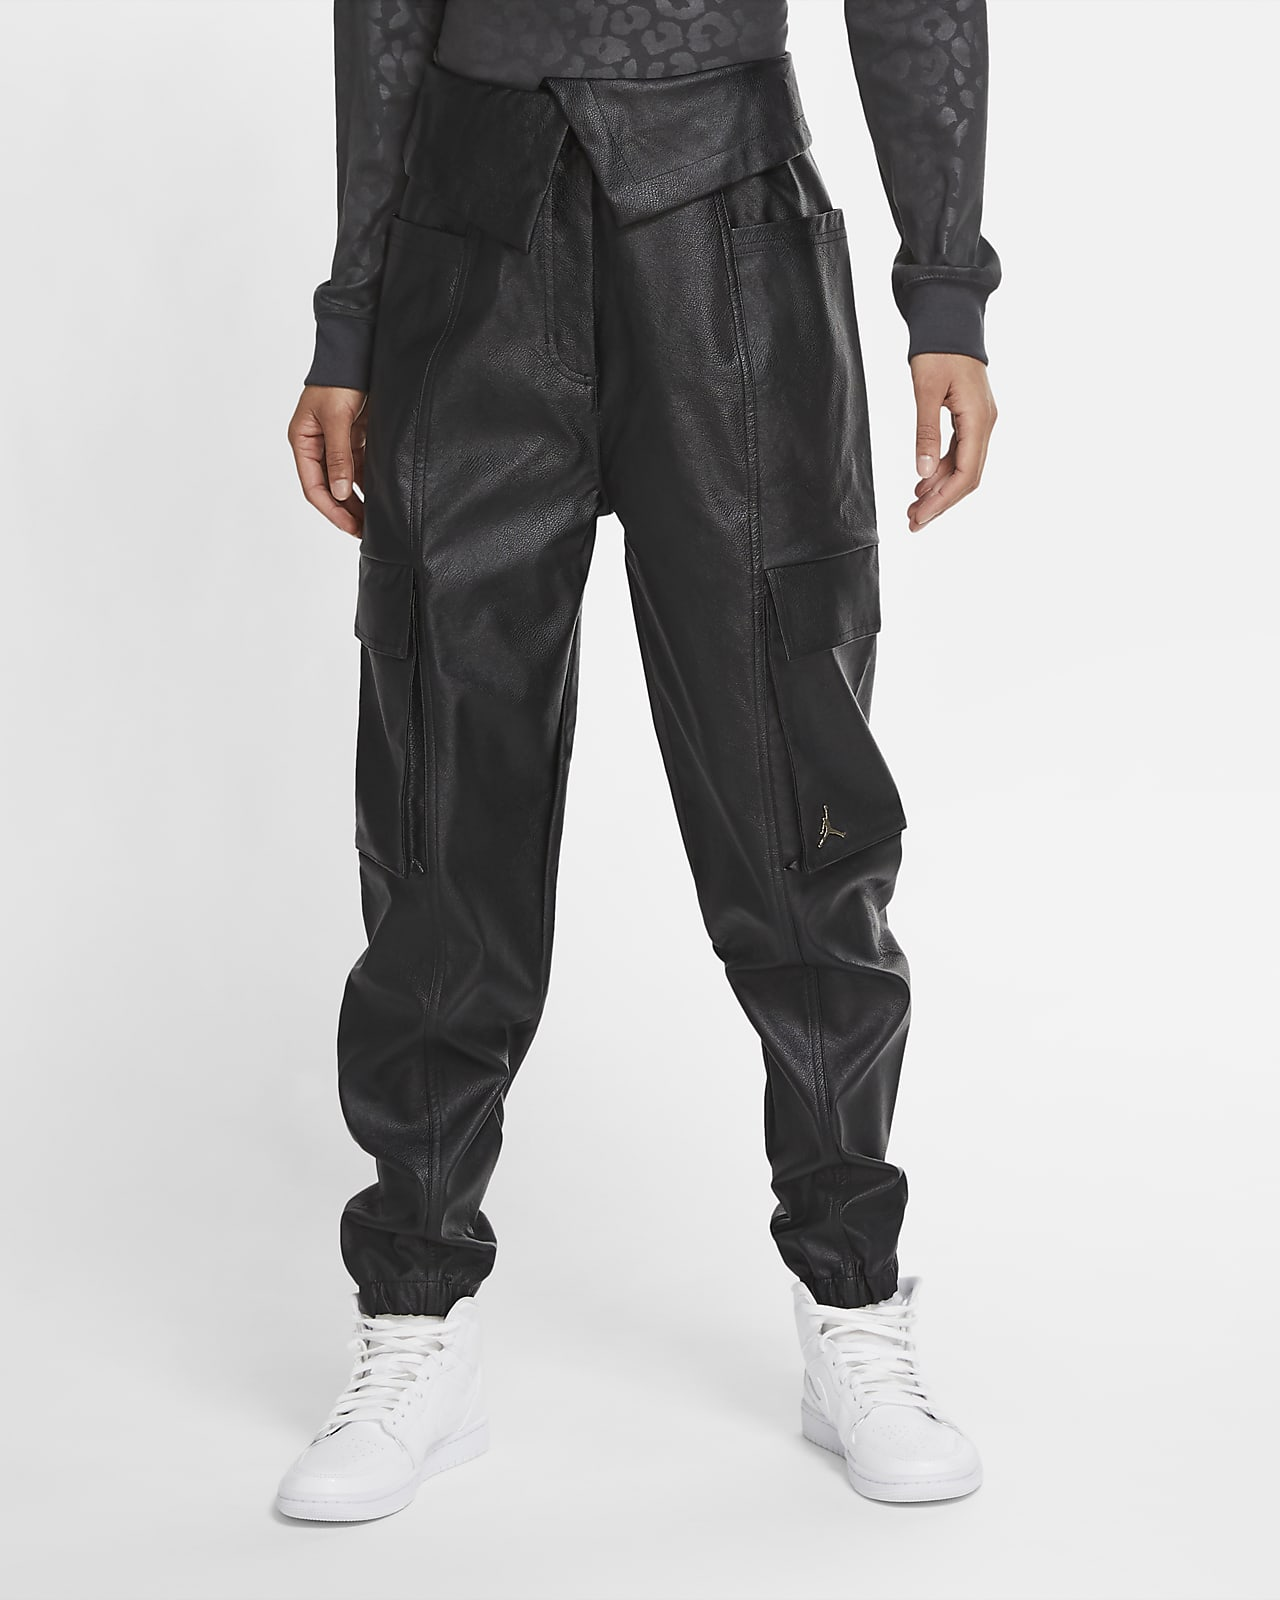 Jordan Court-To-Runway Women's Faux Leather Utility Pants